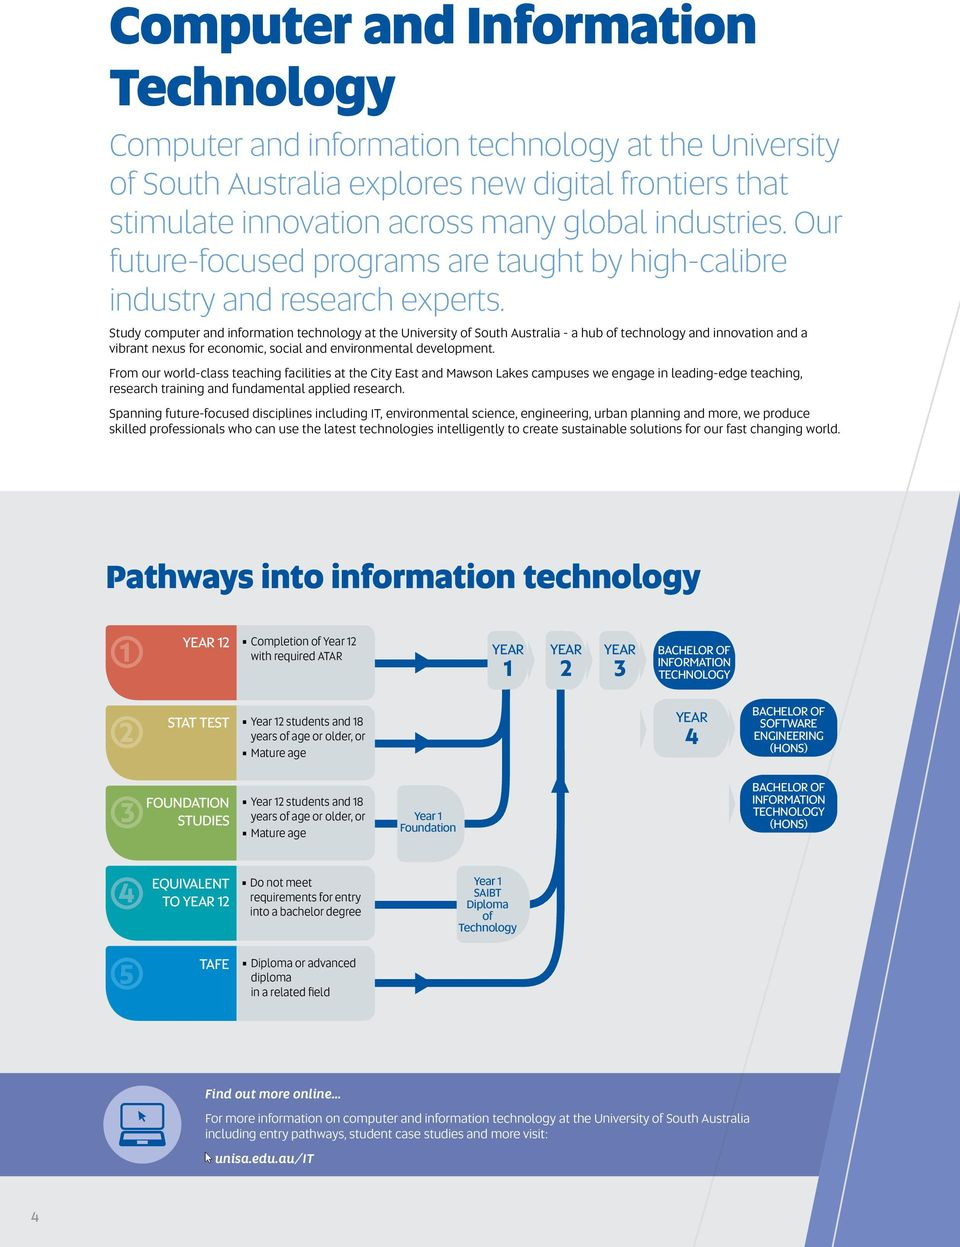 Study computer and information technology at the University of South Australia - a hub of technology and innovation and a vibrant nexus for economic, social and environmental development.